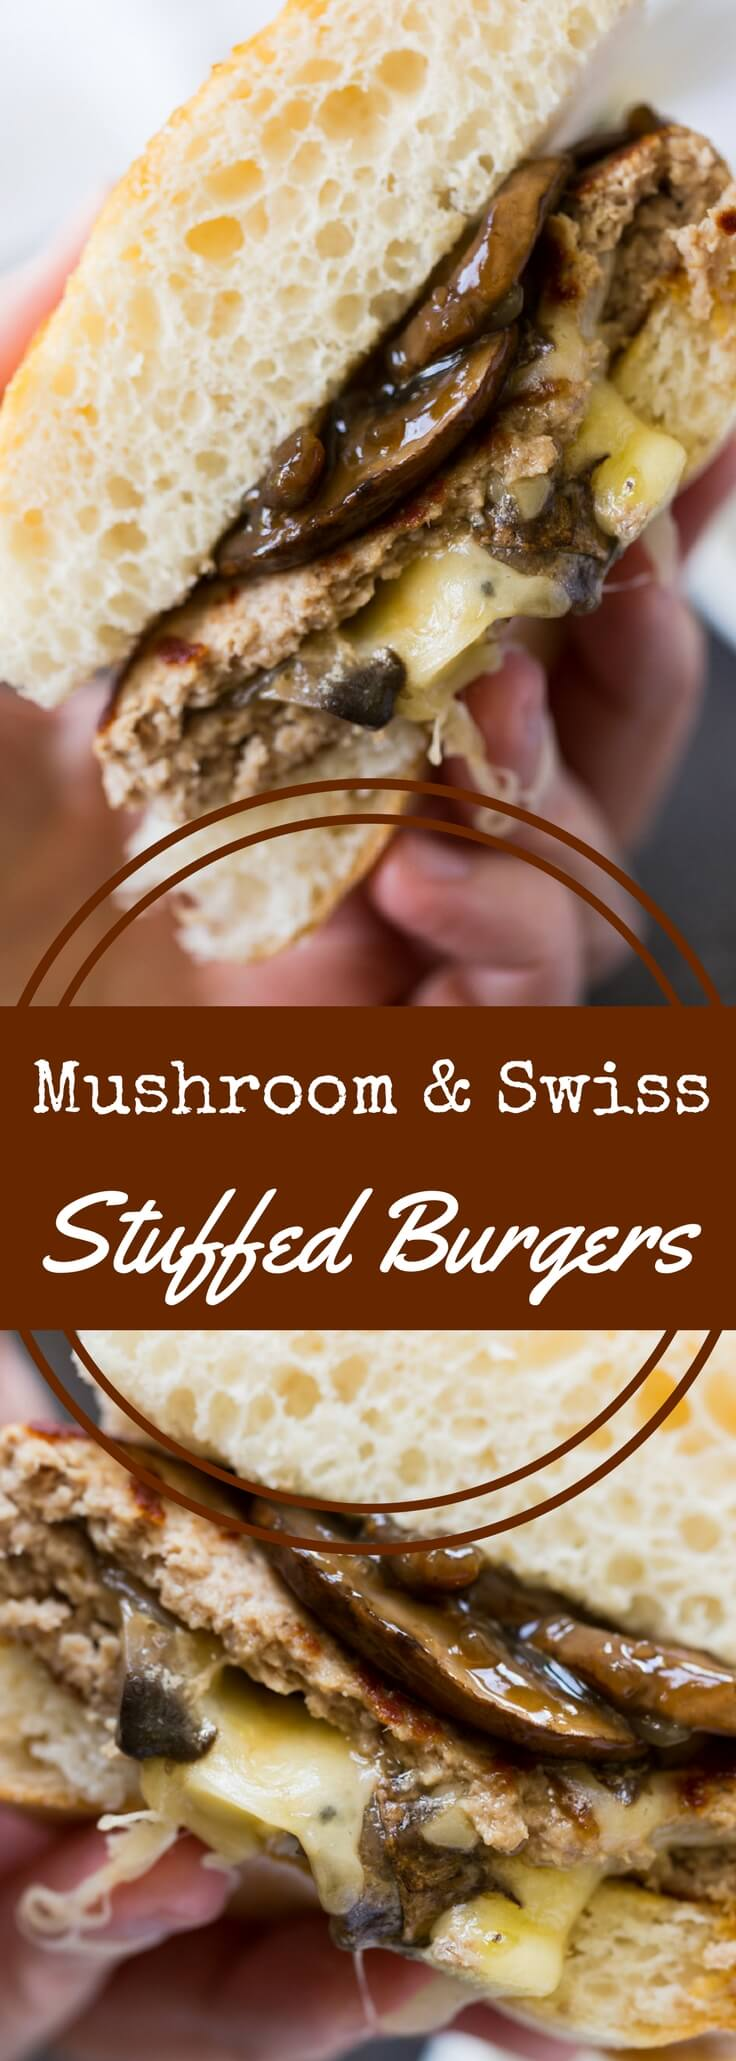 Make a classic mushroom and swiss burger using ground turkey!  These stuffed turkey burgers are packed with portobello mushrooms and melted swiss cheese.